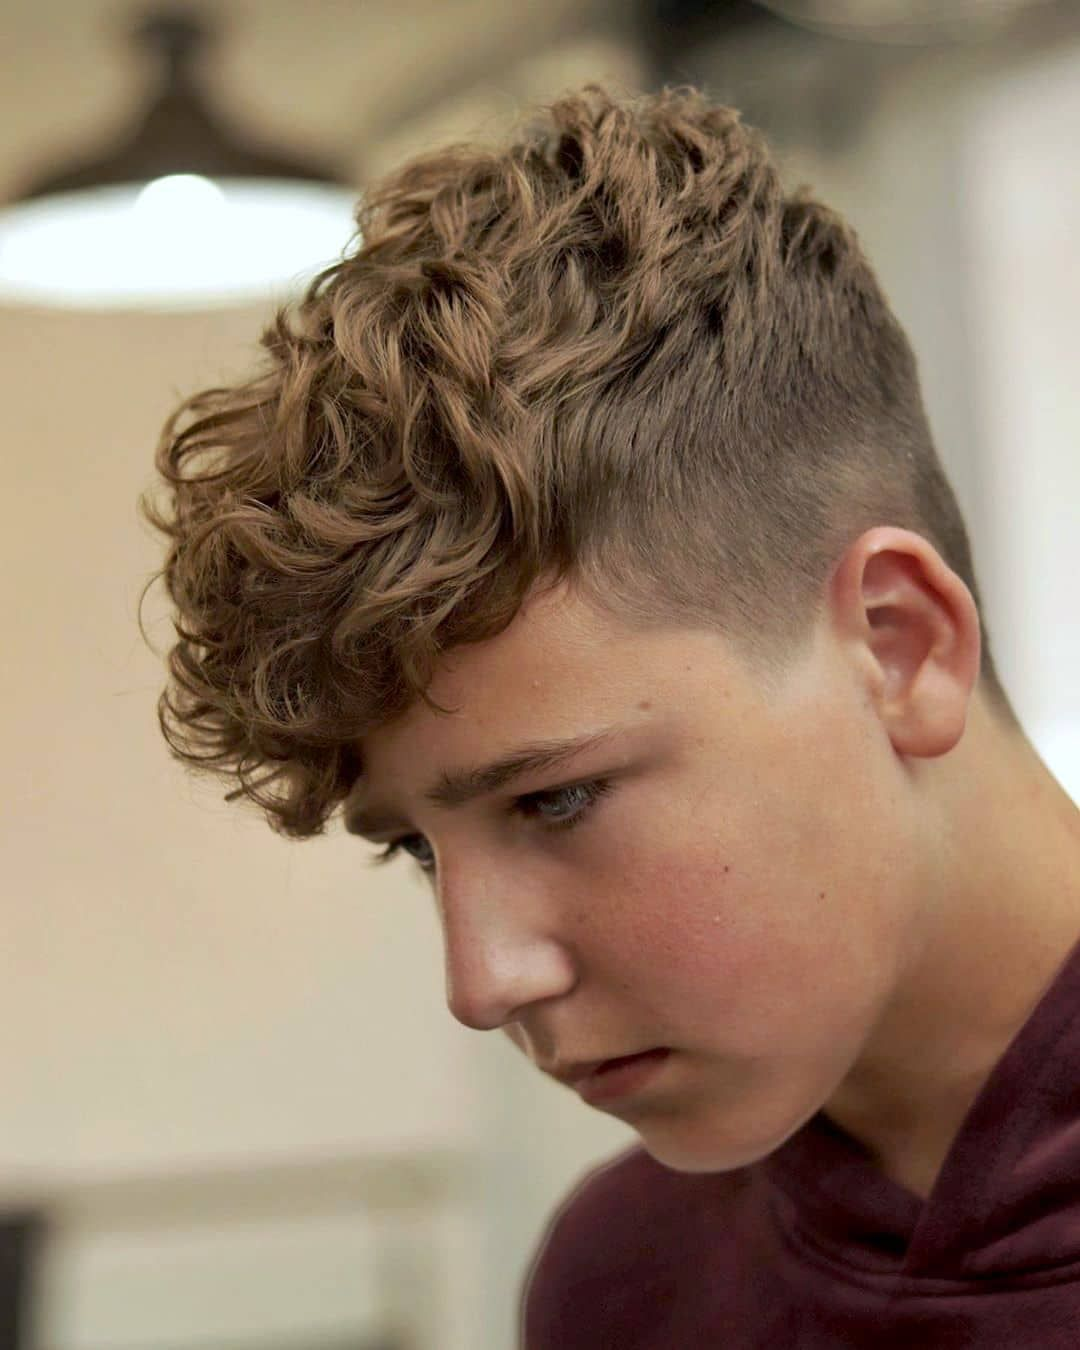 55 Boy S Haircuts Best Styles For 2021 Boys Haircuts Curly Hair Teenage Boy Hairstyles Young Mens Hairstyles